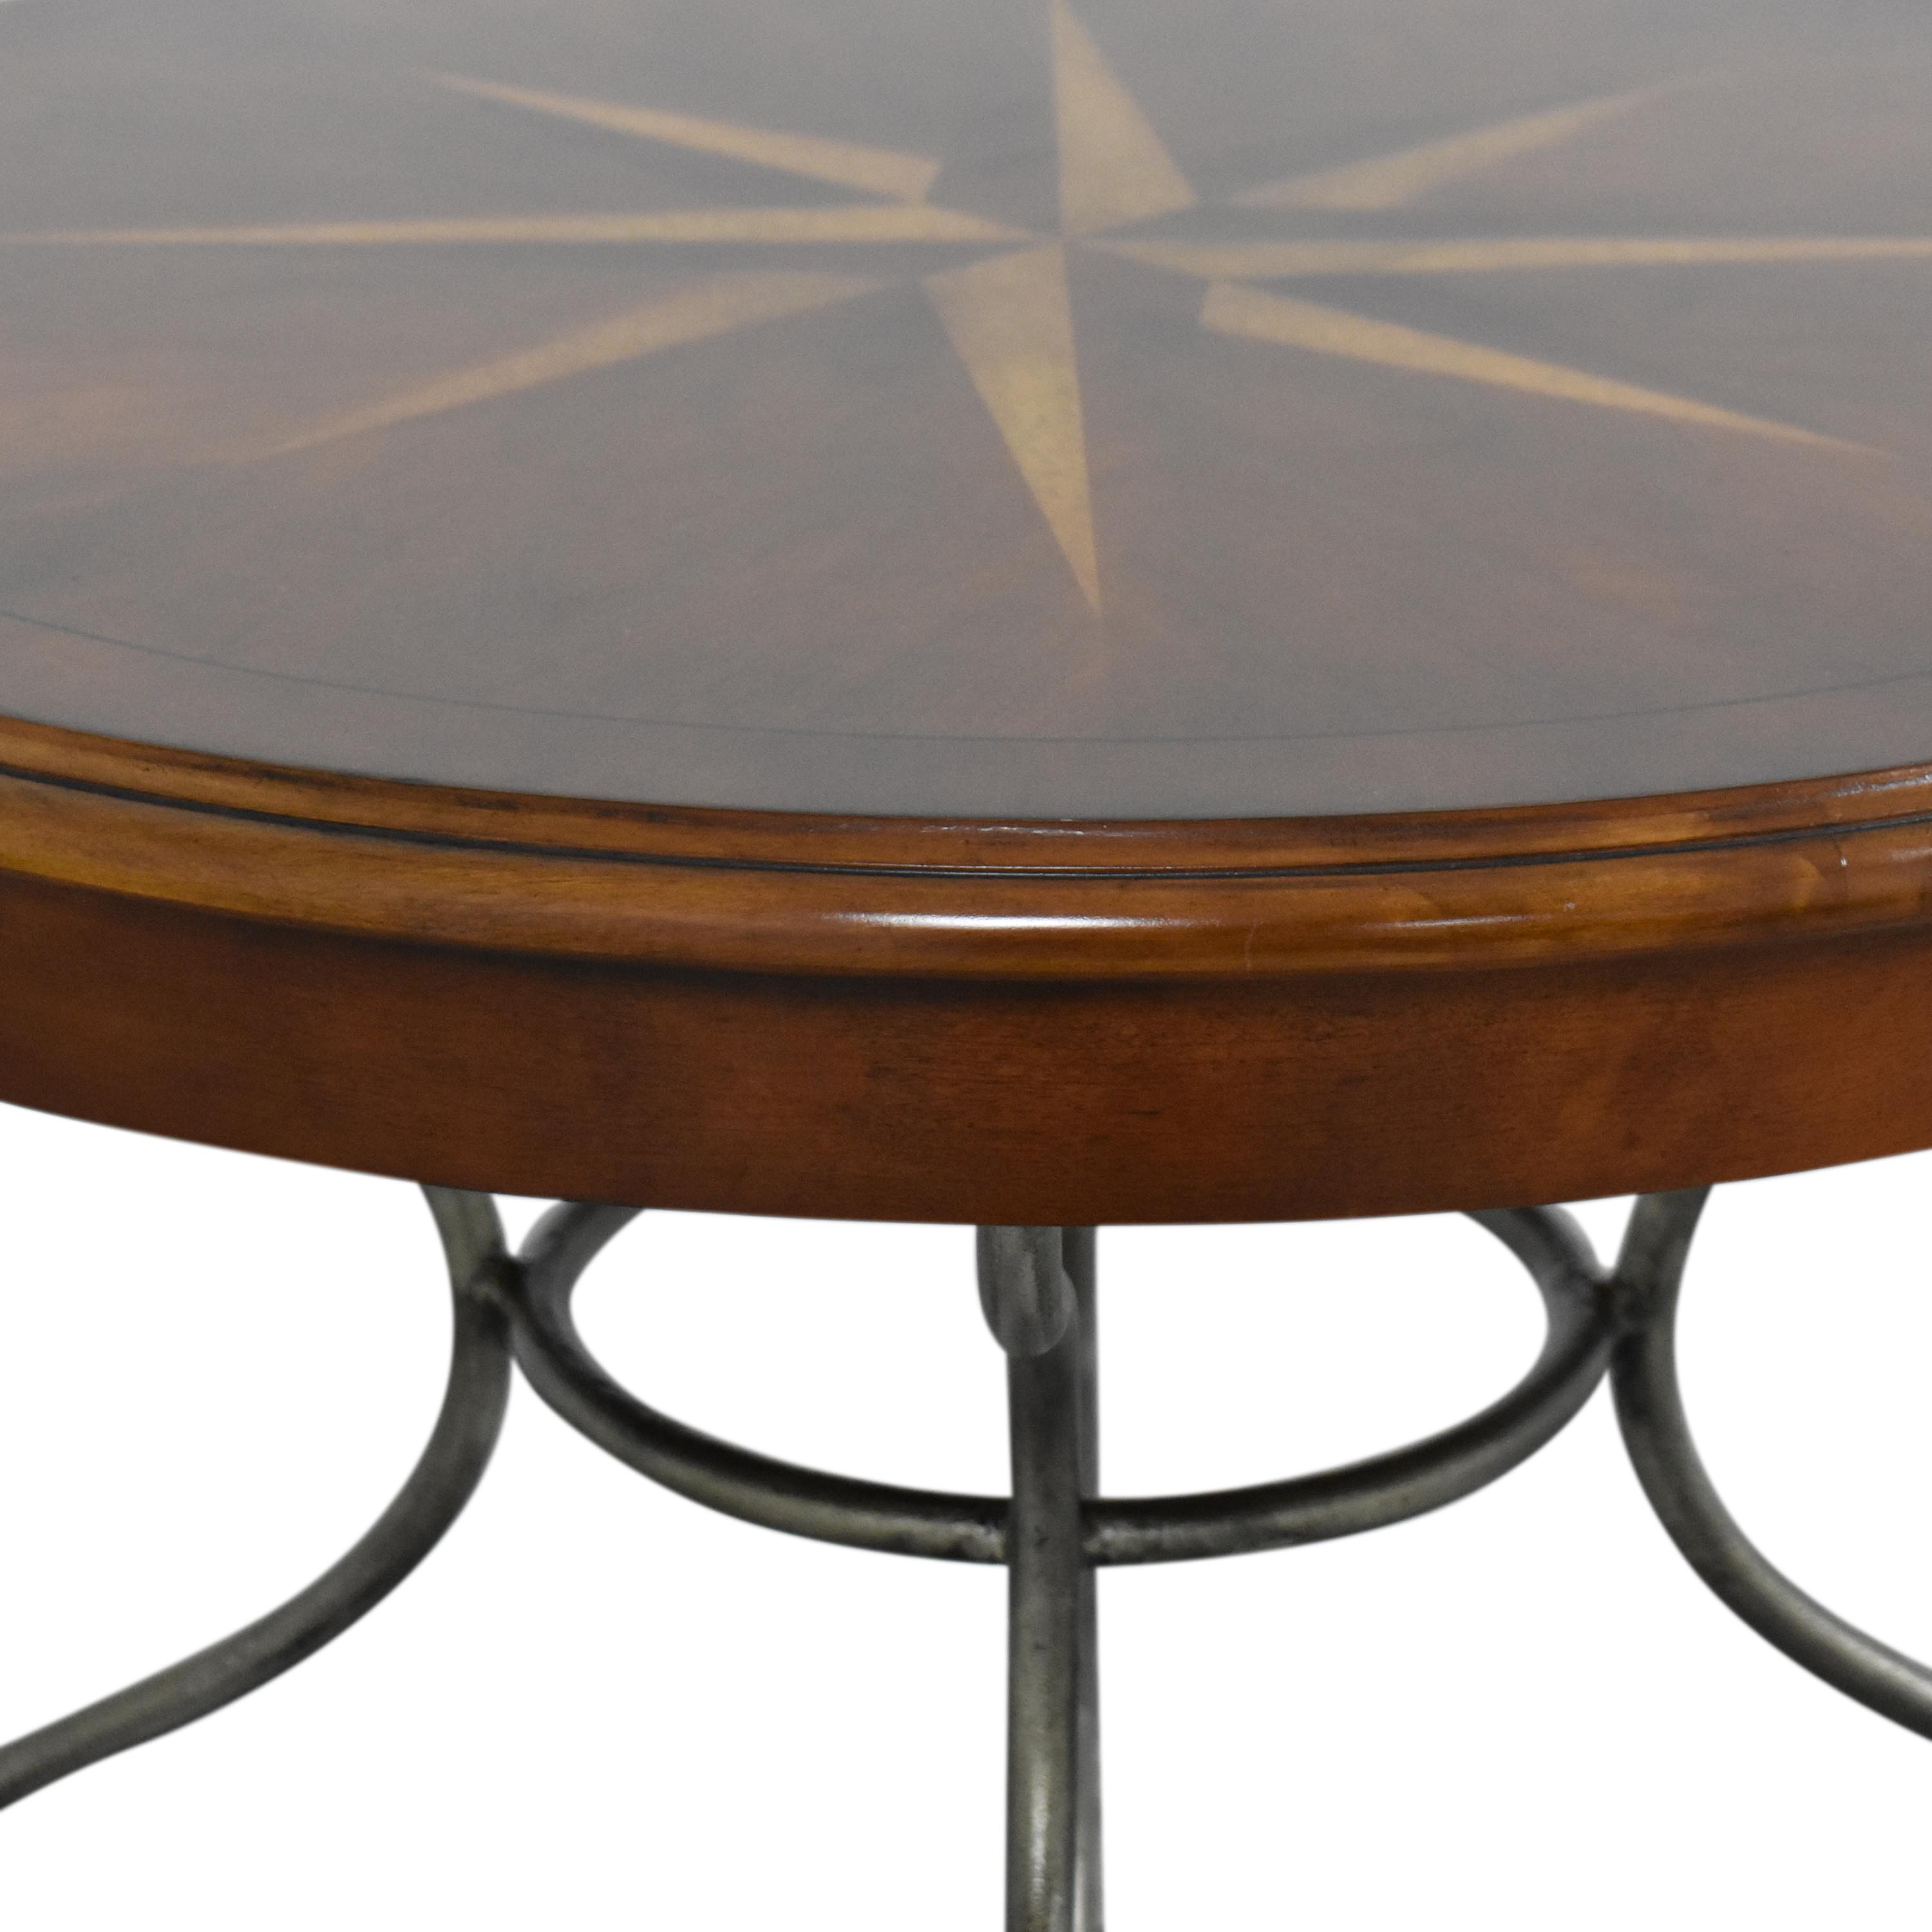 Ethan Allen Ethan Allen Ornate Round End Table nyc